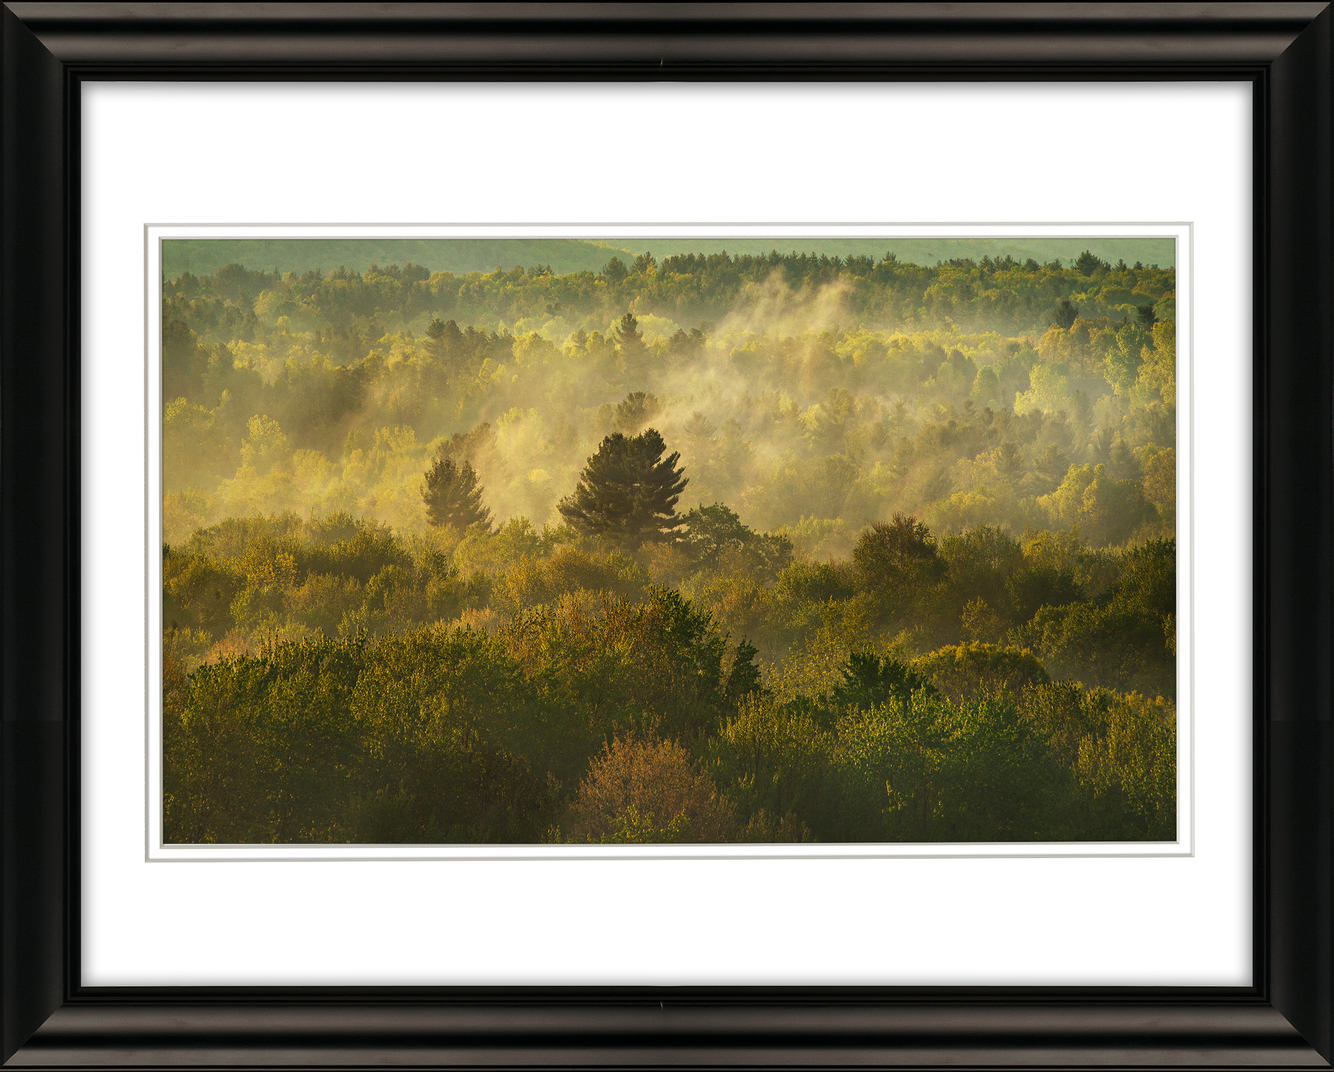 Frame 1957 MIST AT SUNRISE, SOUTH AMHERST, PIONEER VALLEY